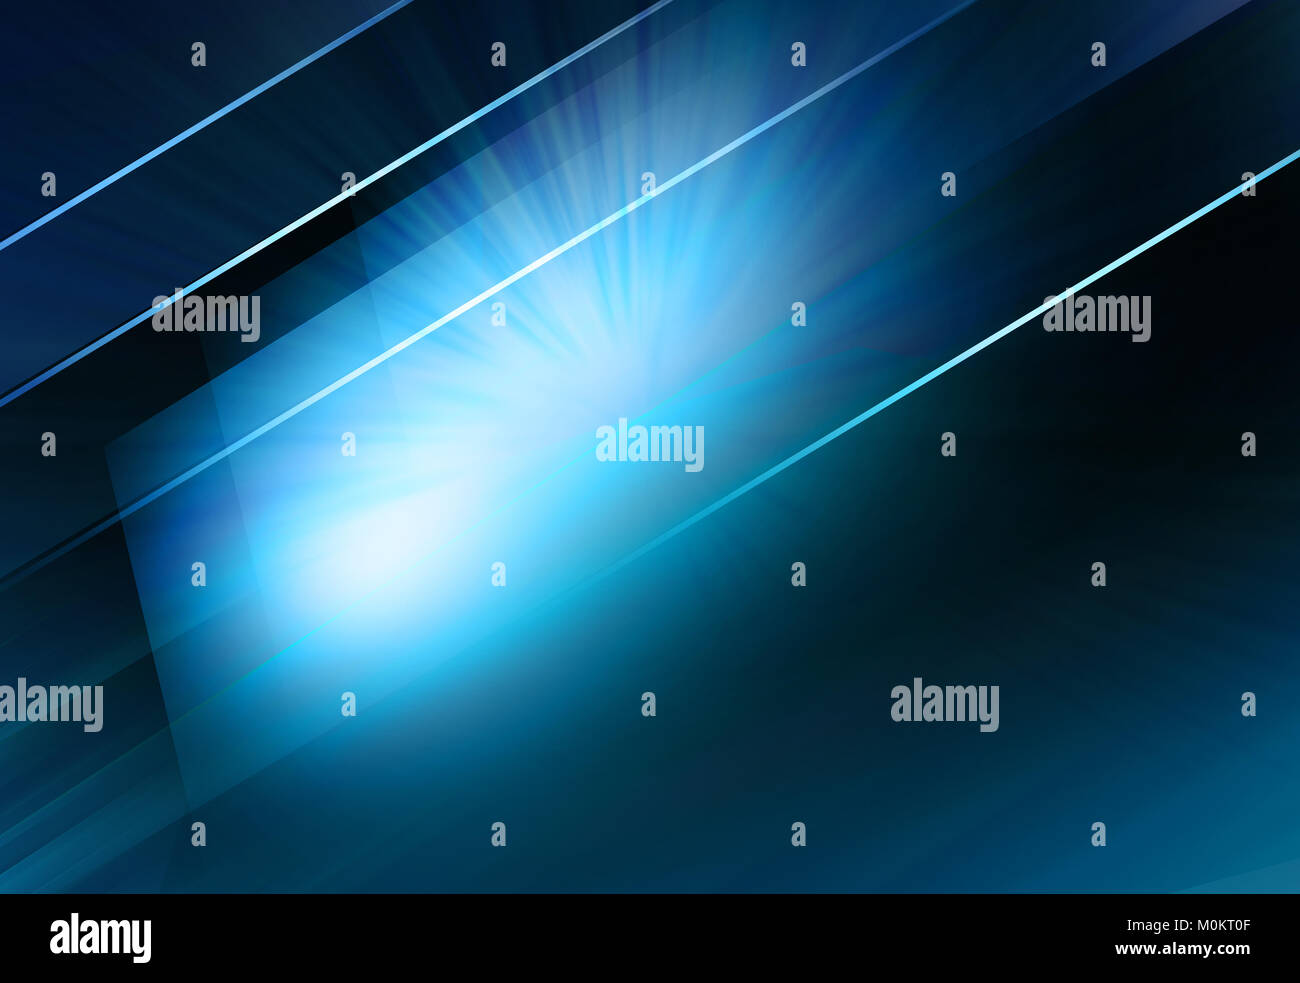 Graphical abstract blue screen with lines and light rays background. - Stock Image